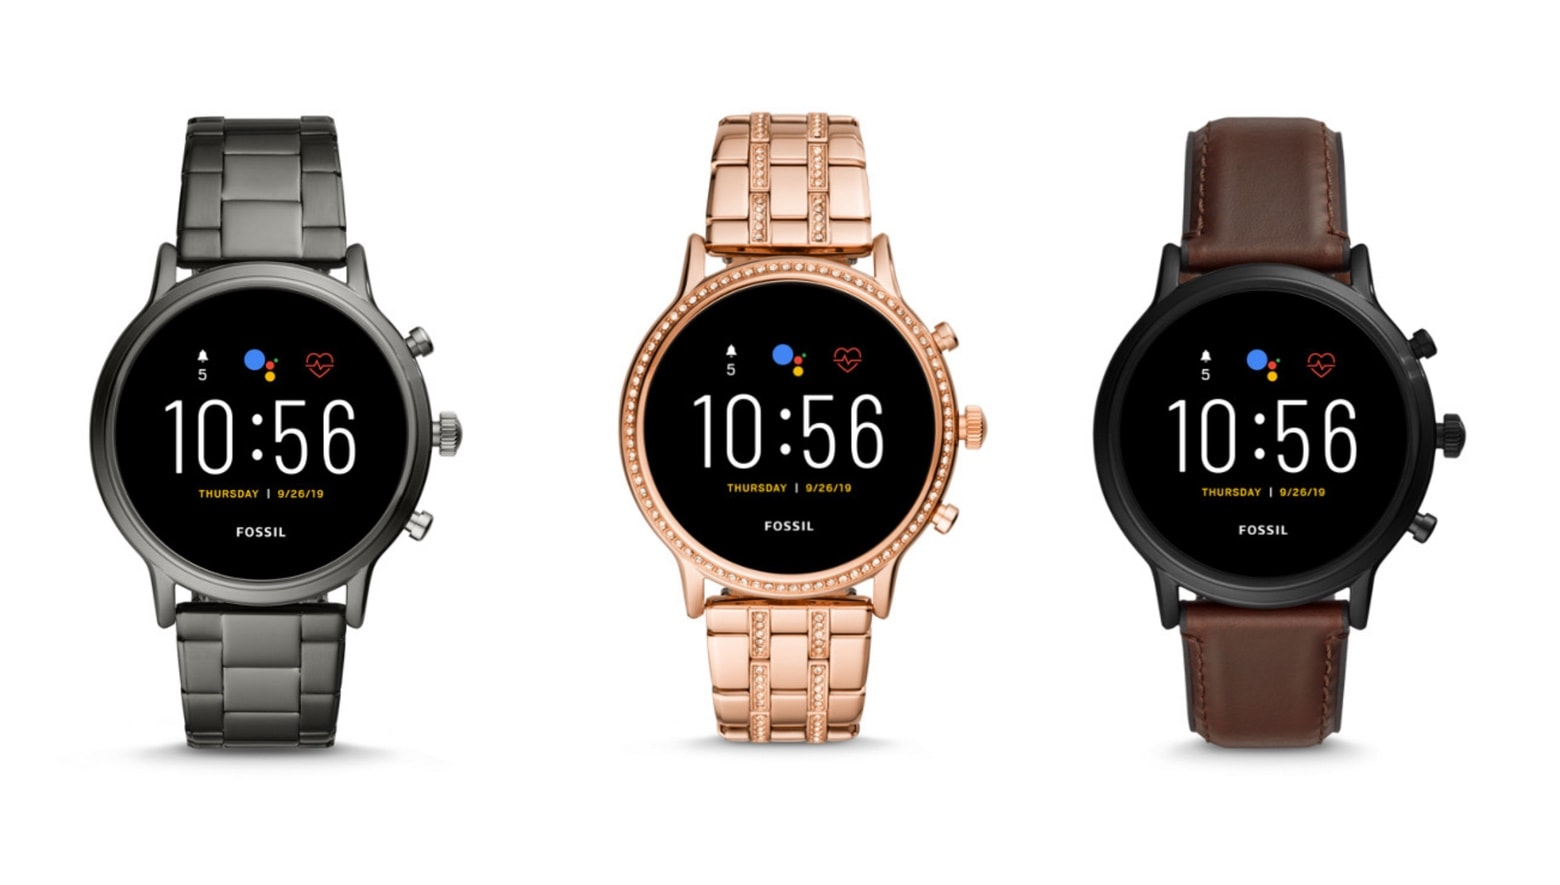 Fossil Gen 5 smart watches